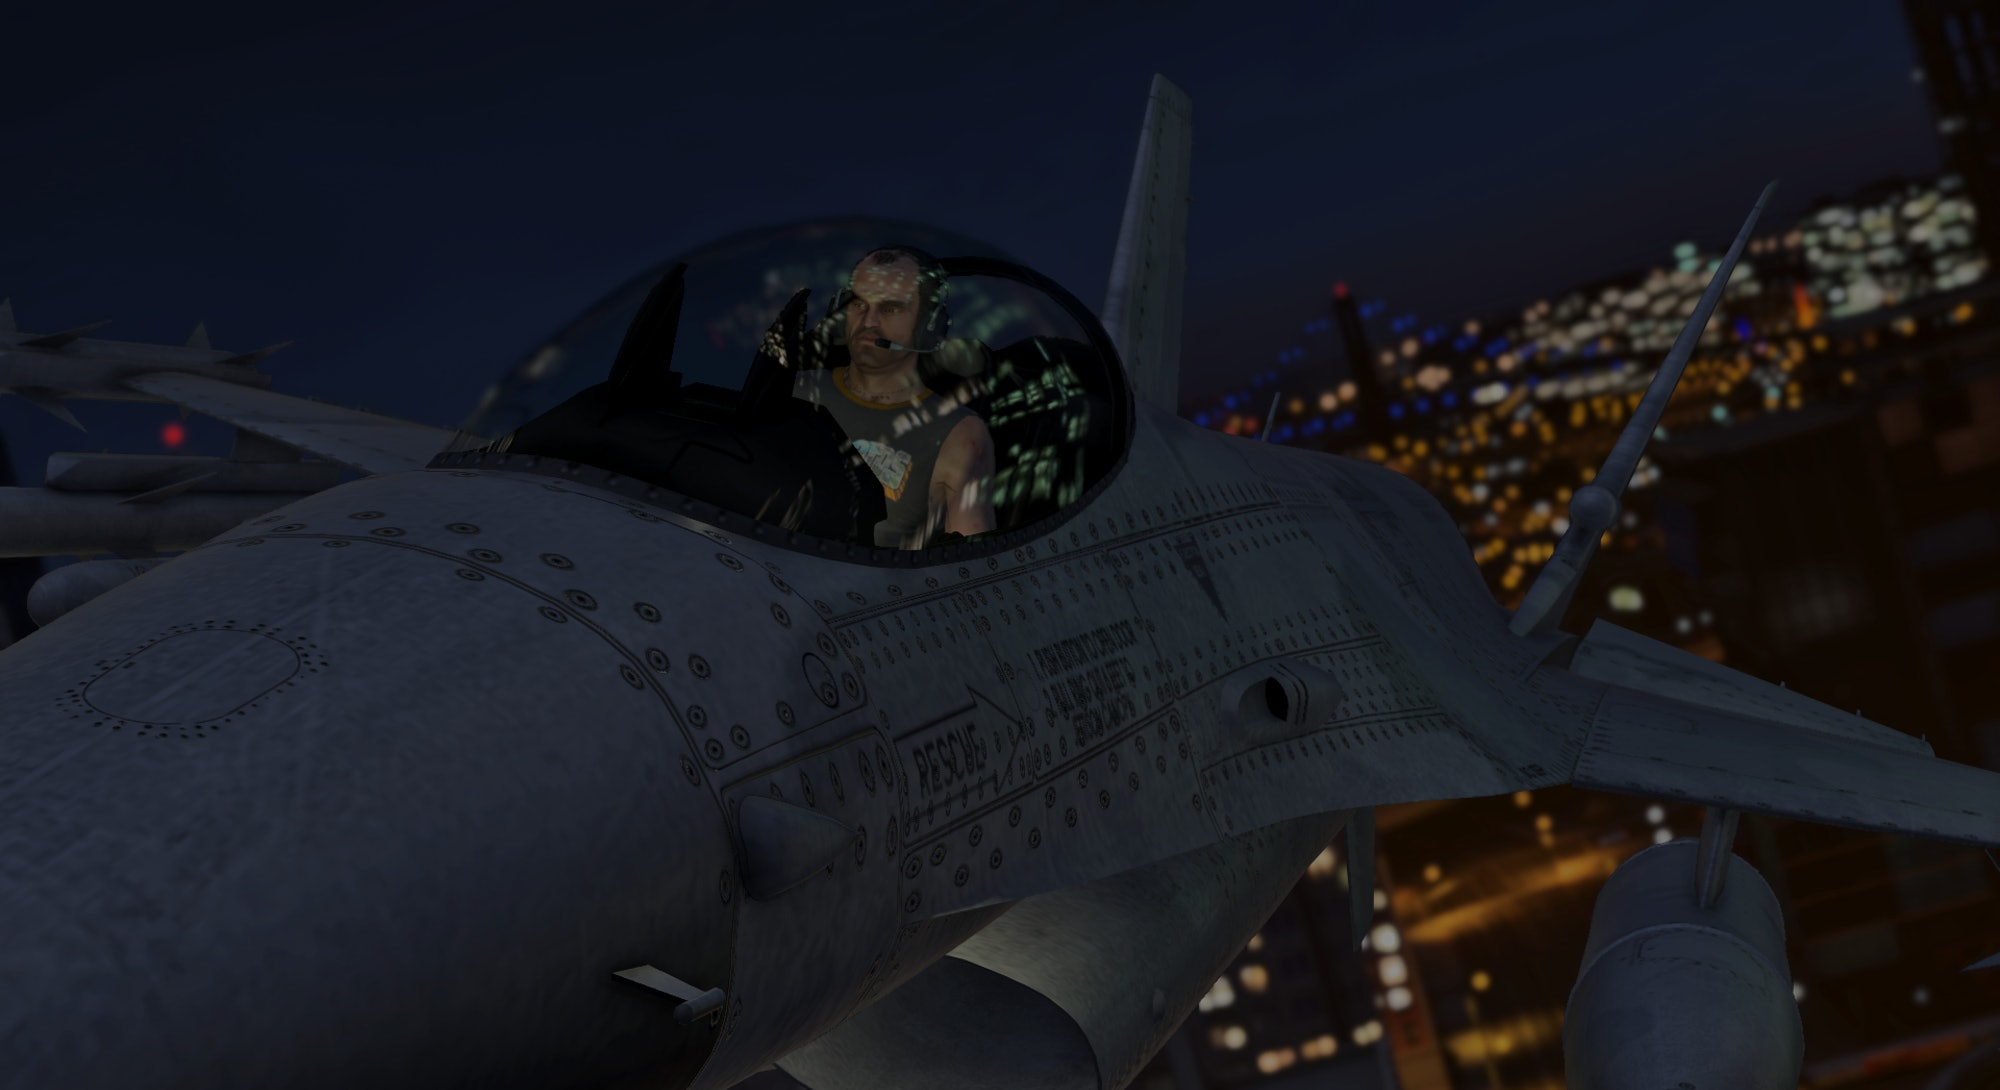 Trevor Phillips piloting a fighter jet in Grand Theft Auto V. Video games. Gaming. Rockstar games.